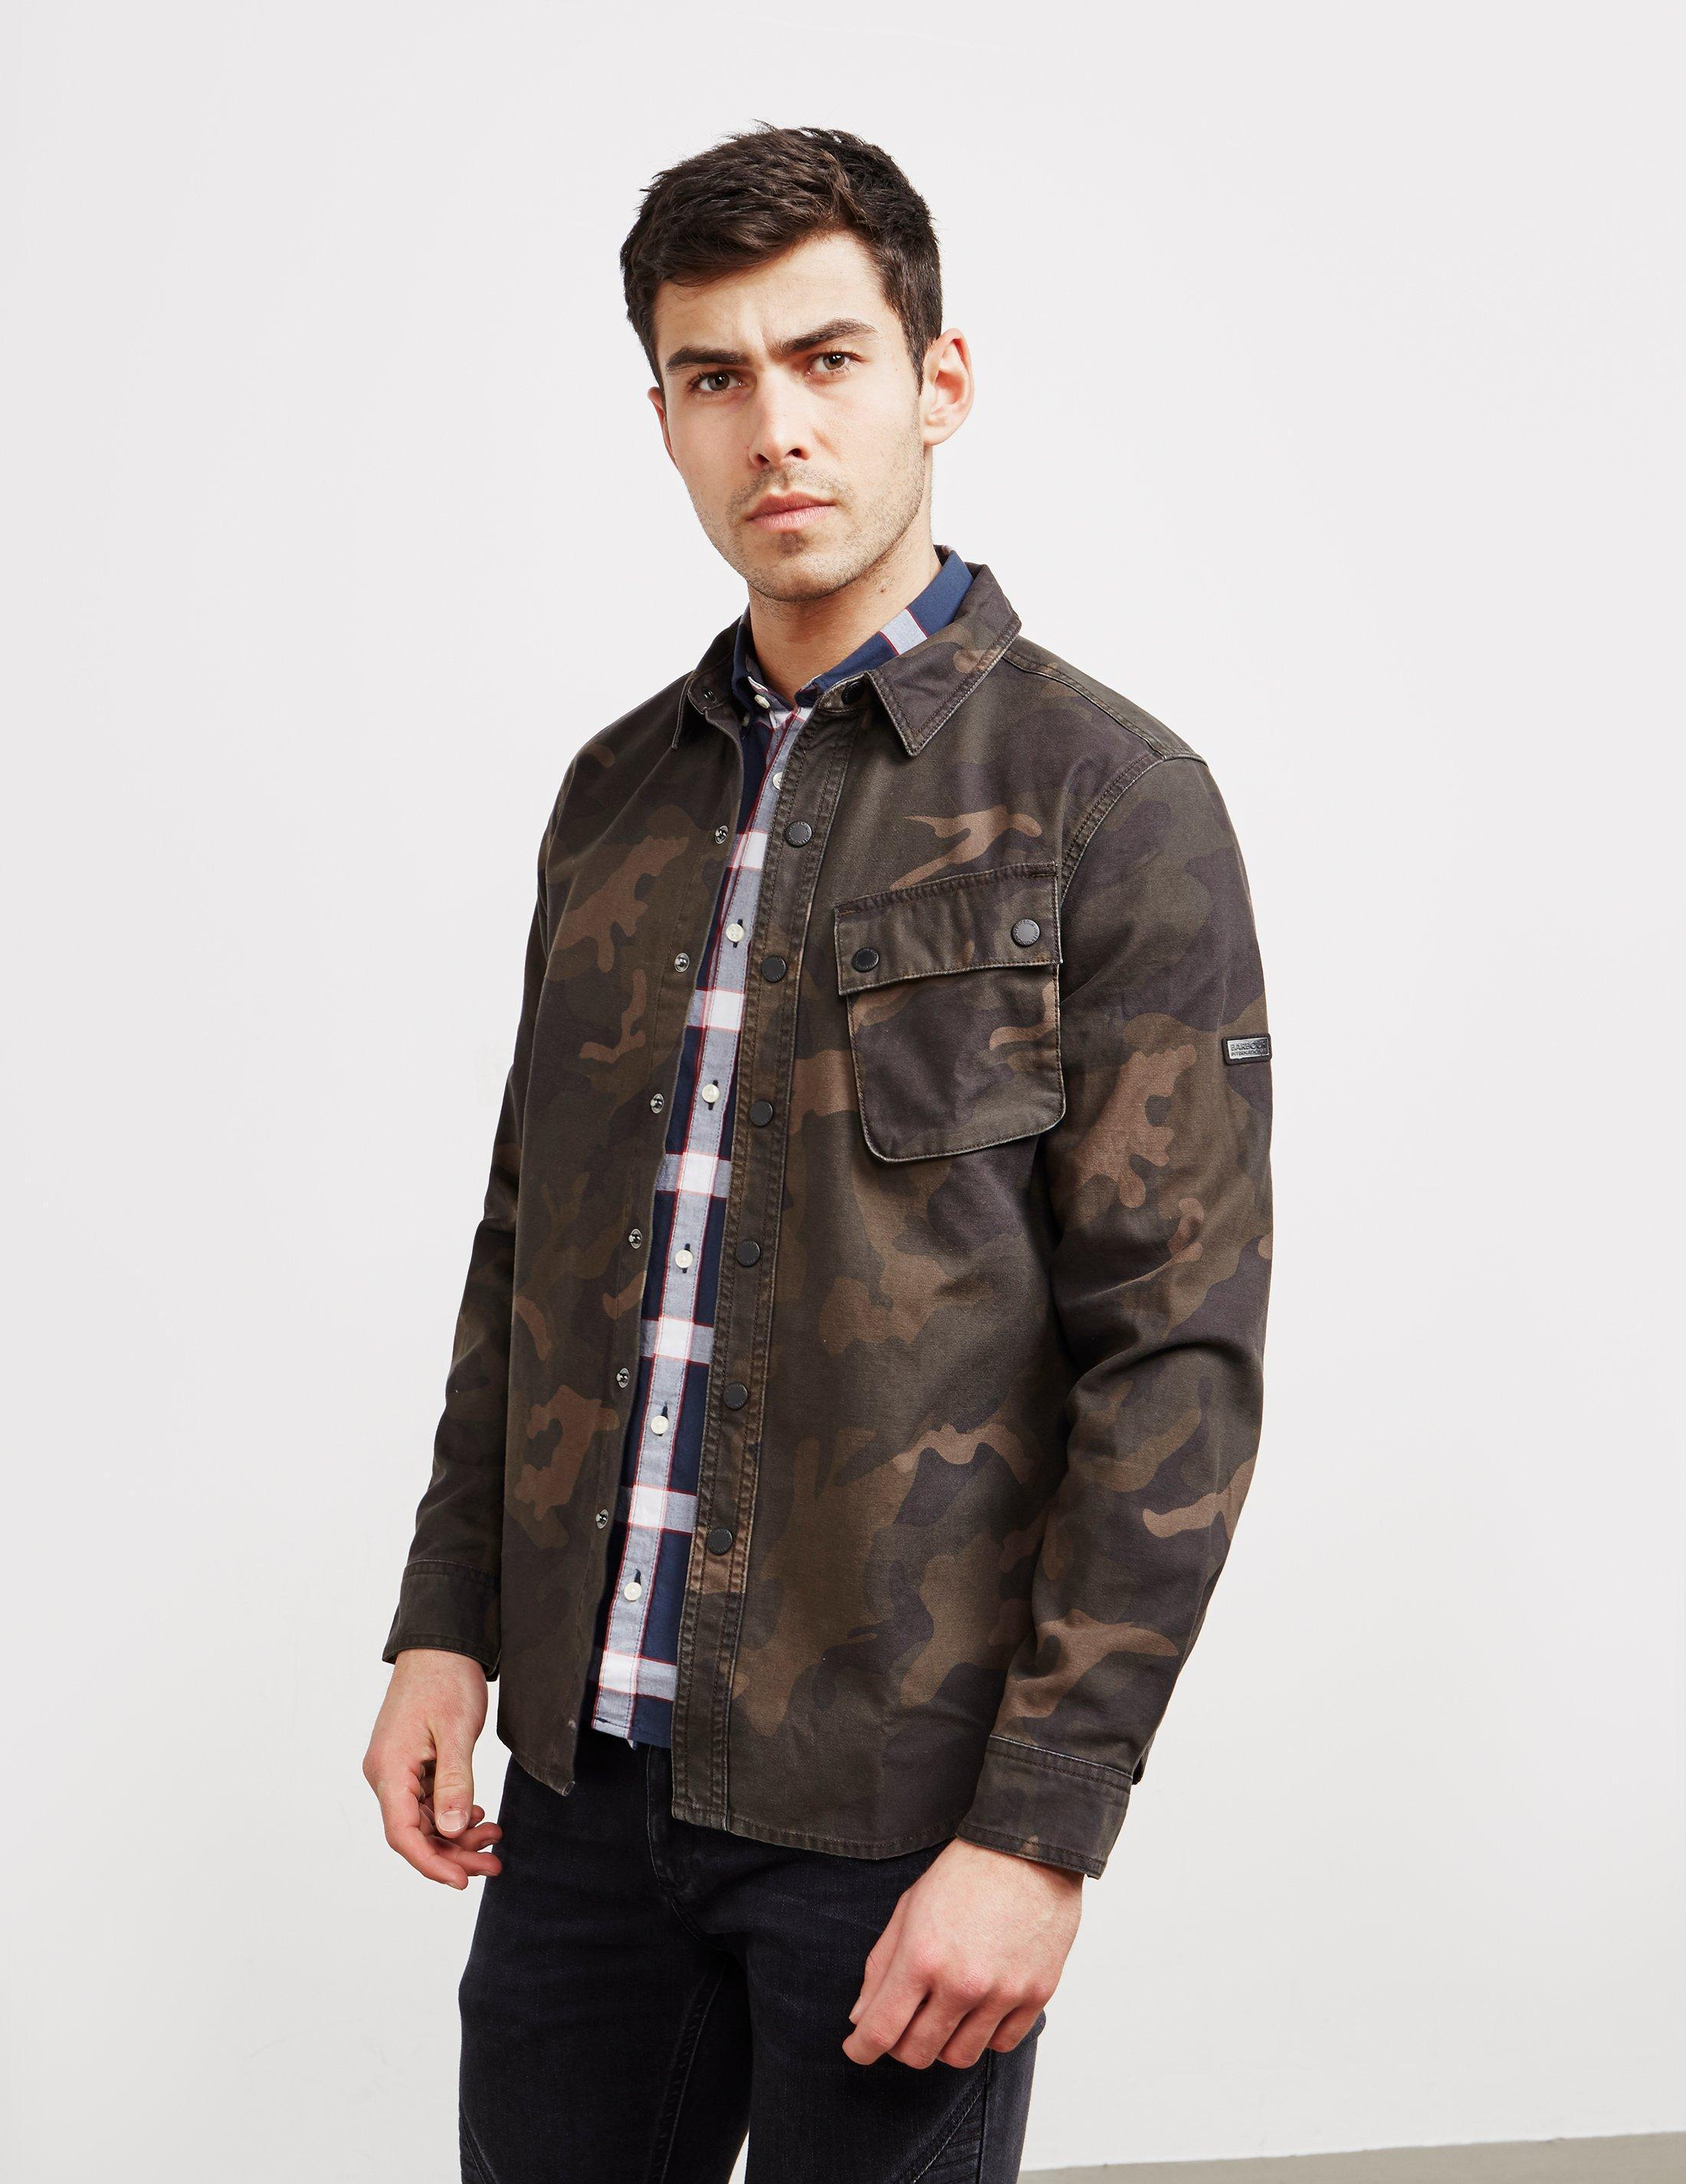 a8f07eff06501 Lyst - Barbour Camouflage Overshirt Green in Green for Men